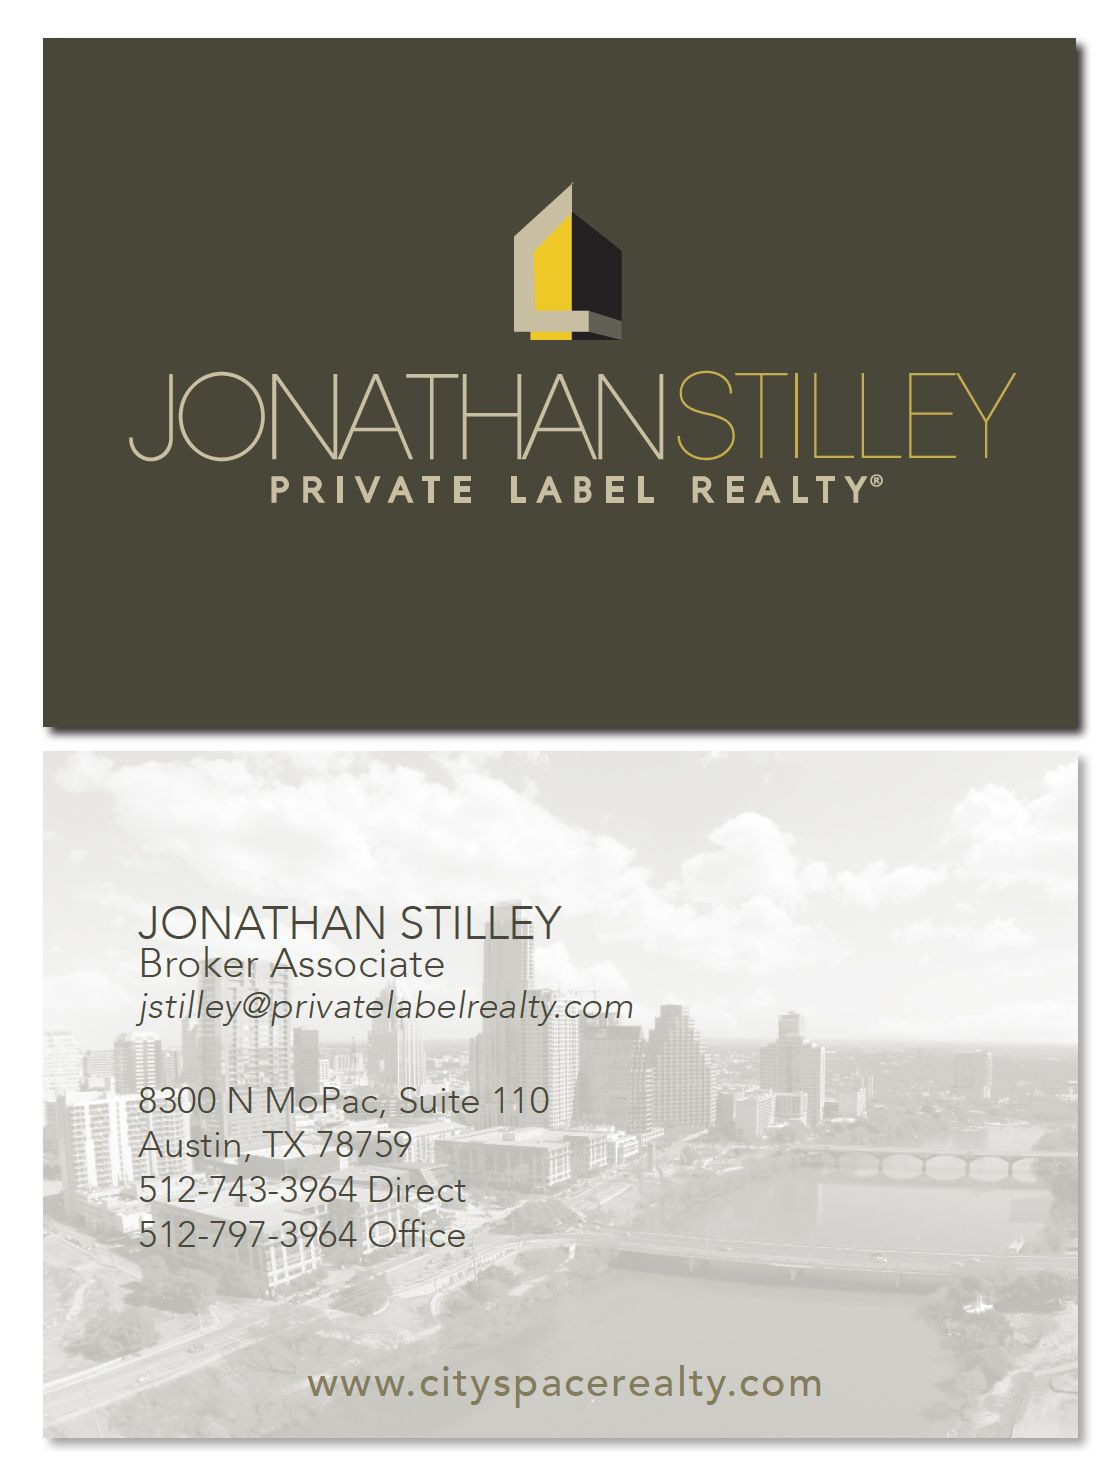 Jonathan stilley private label realty business card austin jonathan stilley private label realty business card austin texas 2014 magicingreecefo Gallery